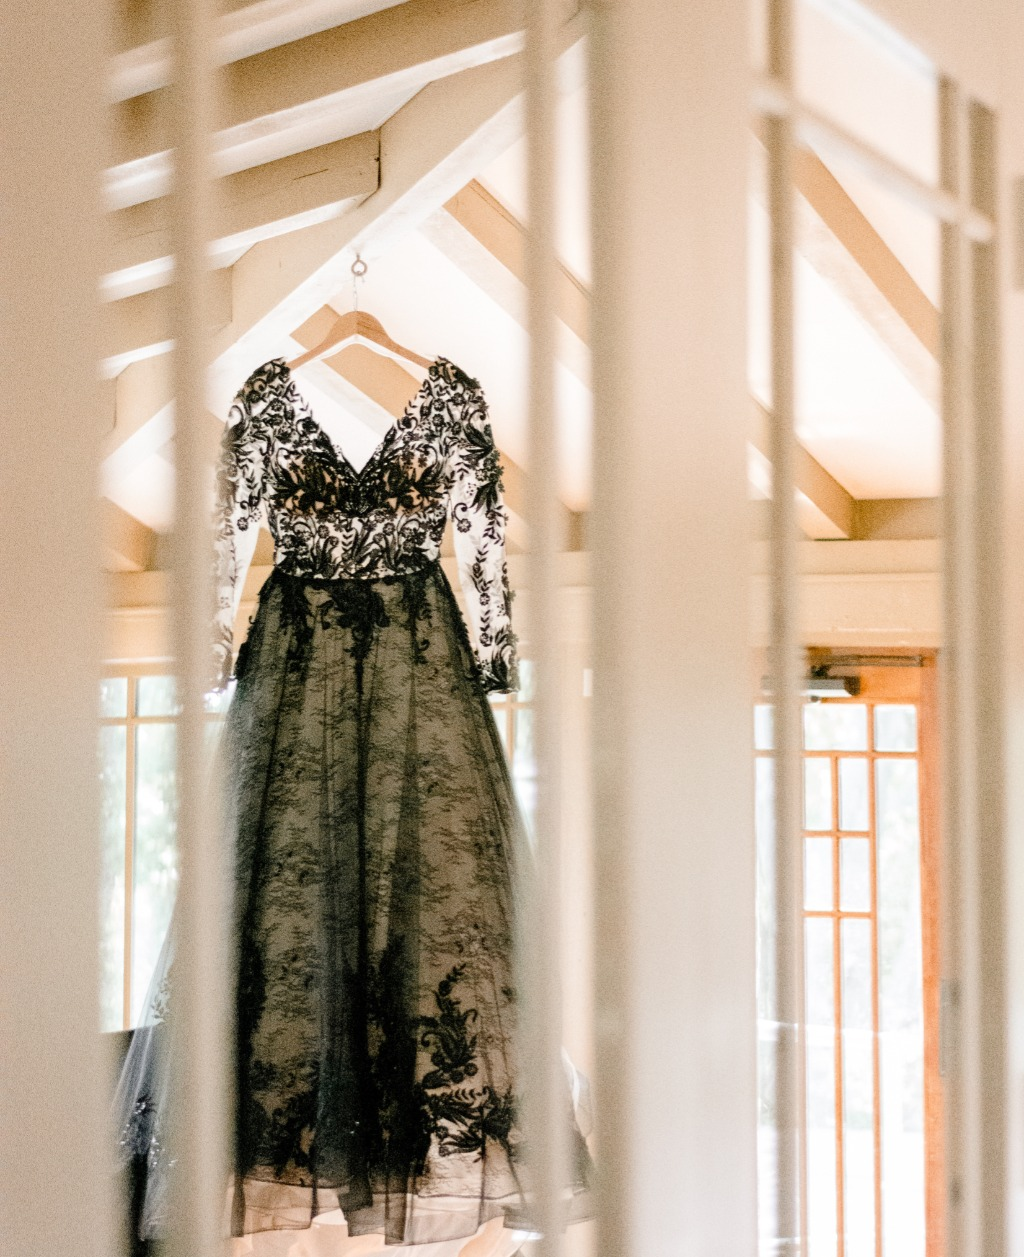 We love a good mirror shot, especially when it is showing off a gorgeous wedding dress. Black wedding dresses are becoming a trend